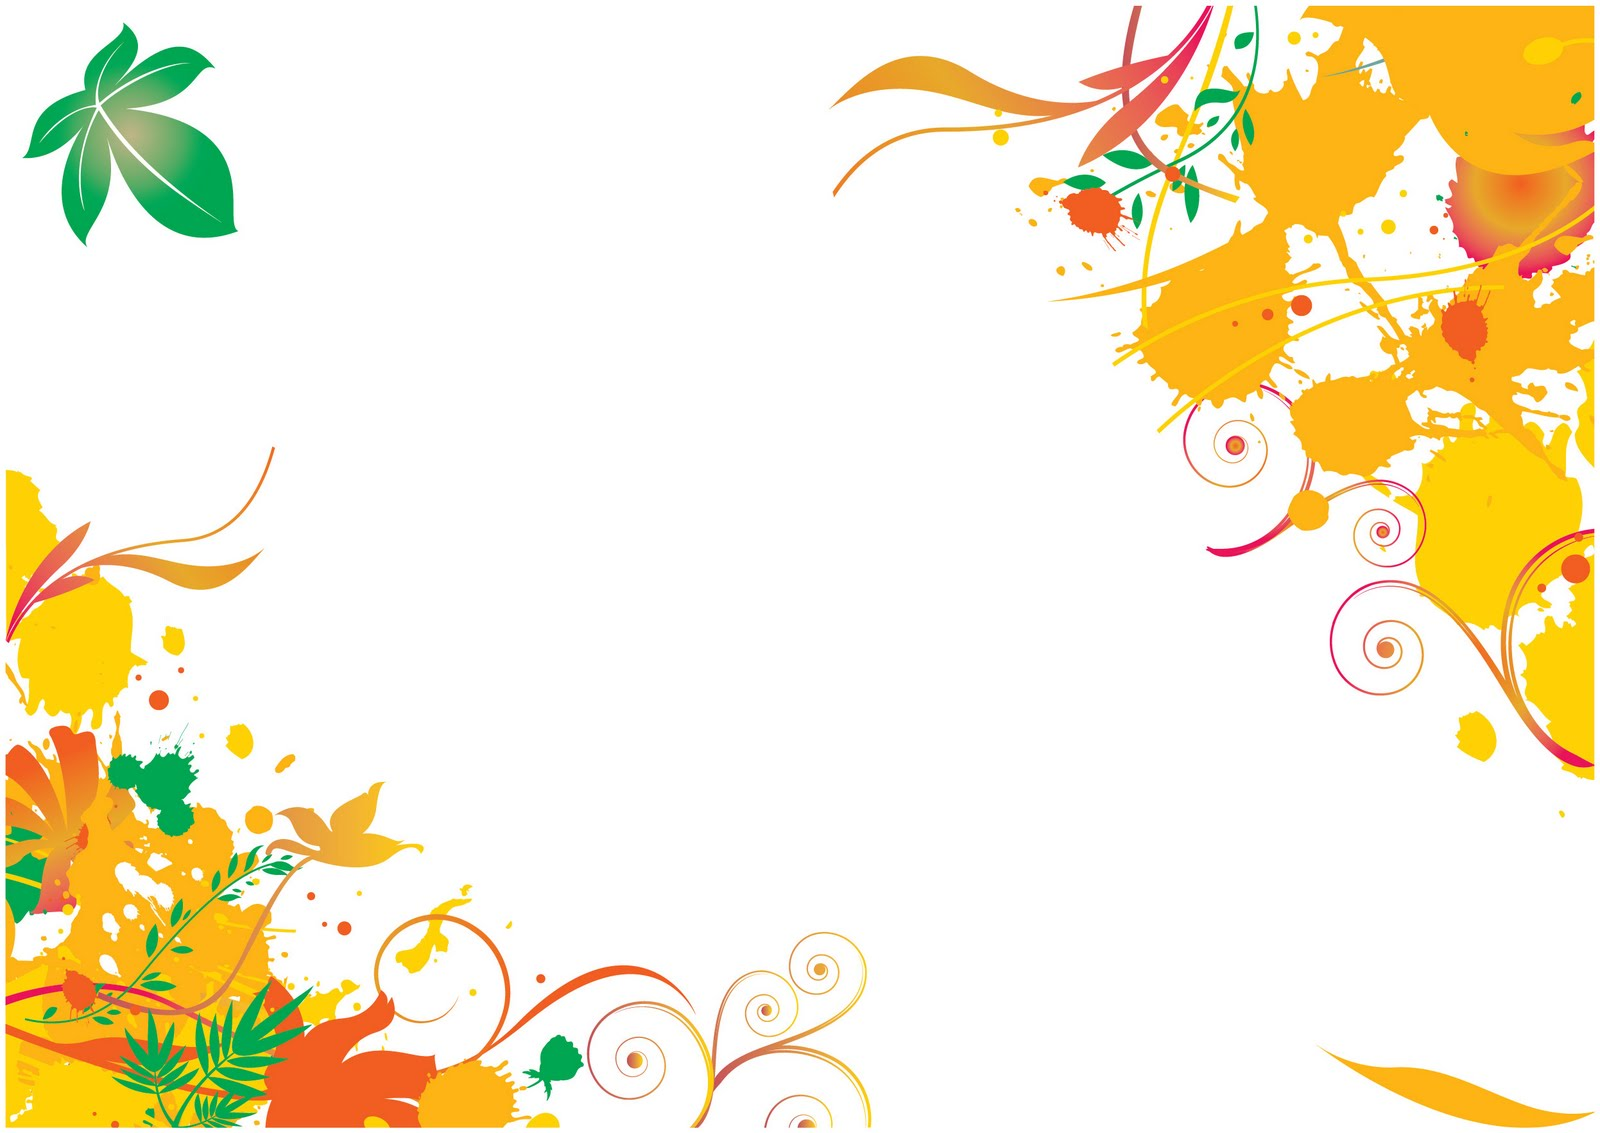 Background Designs - ClipArt Best